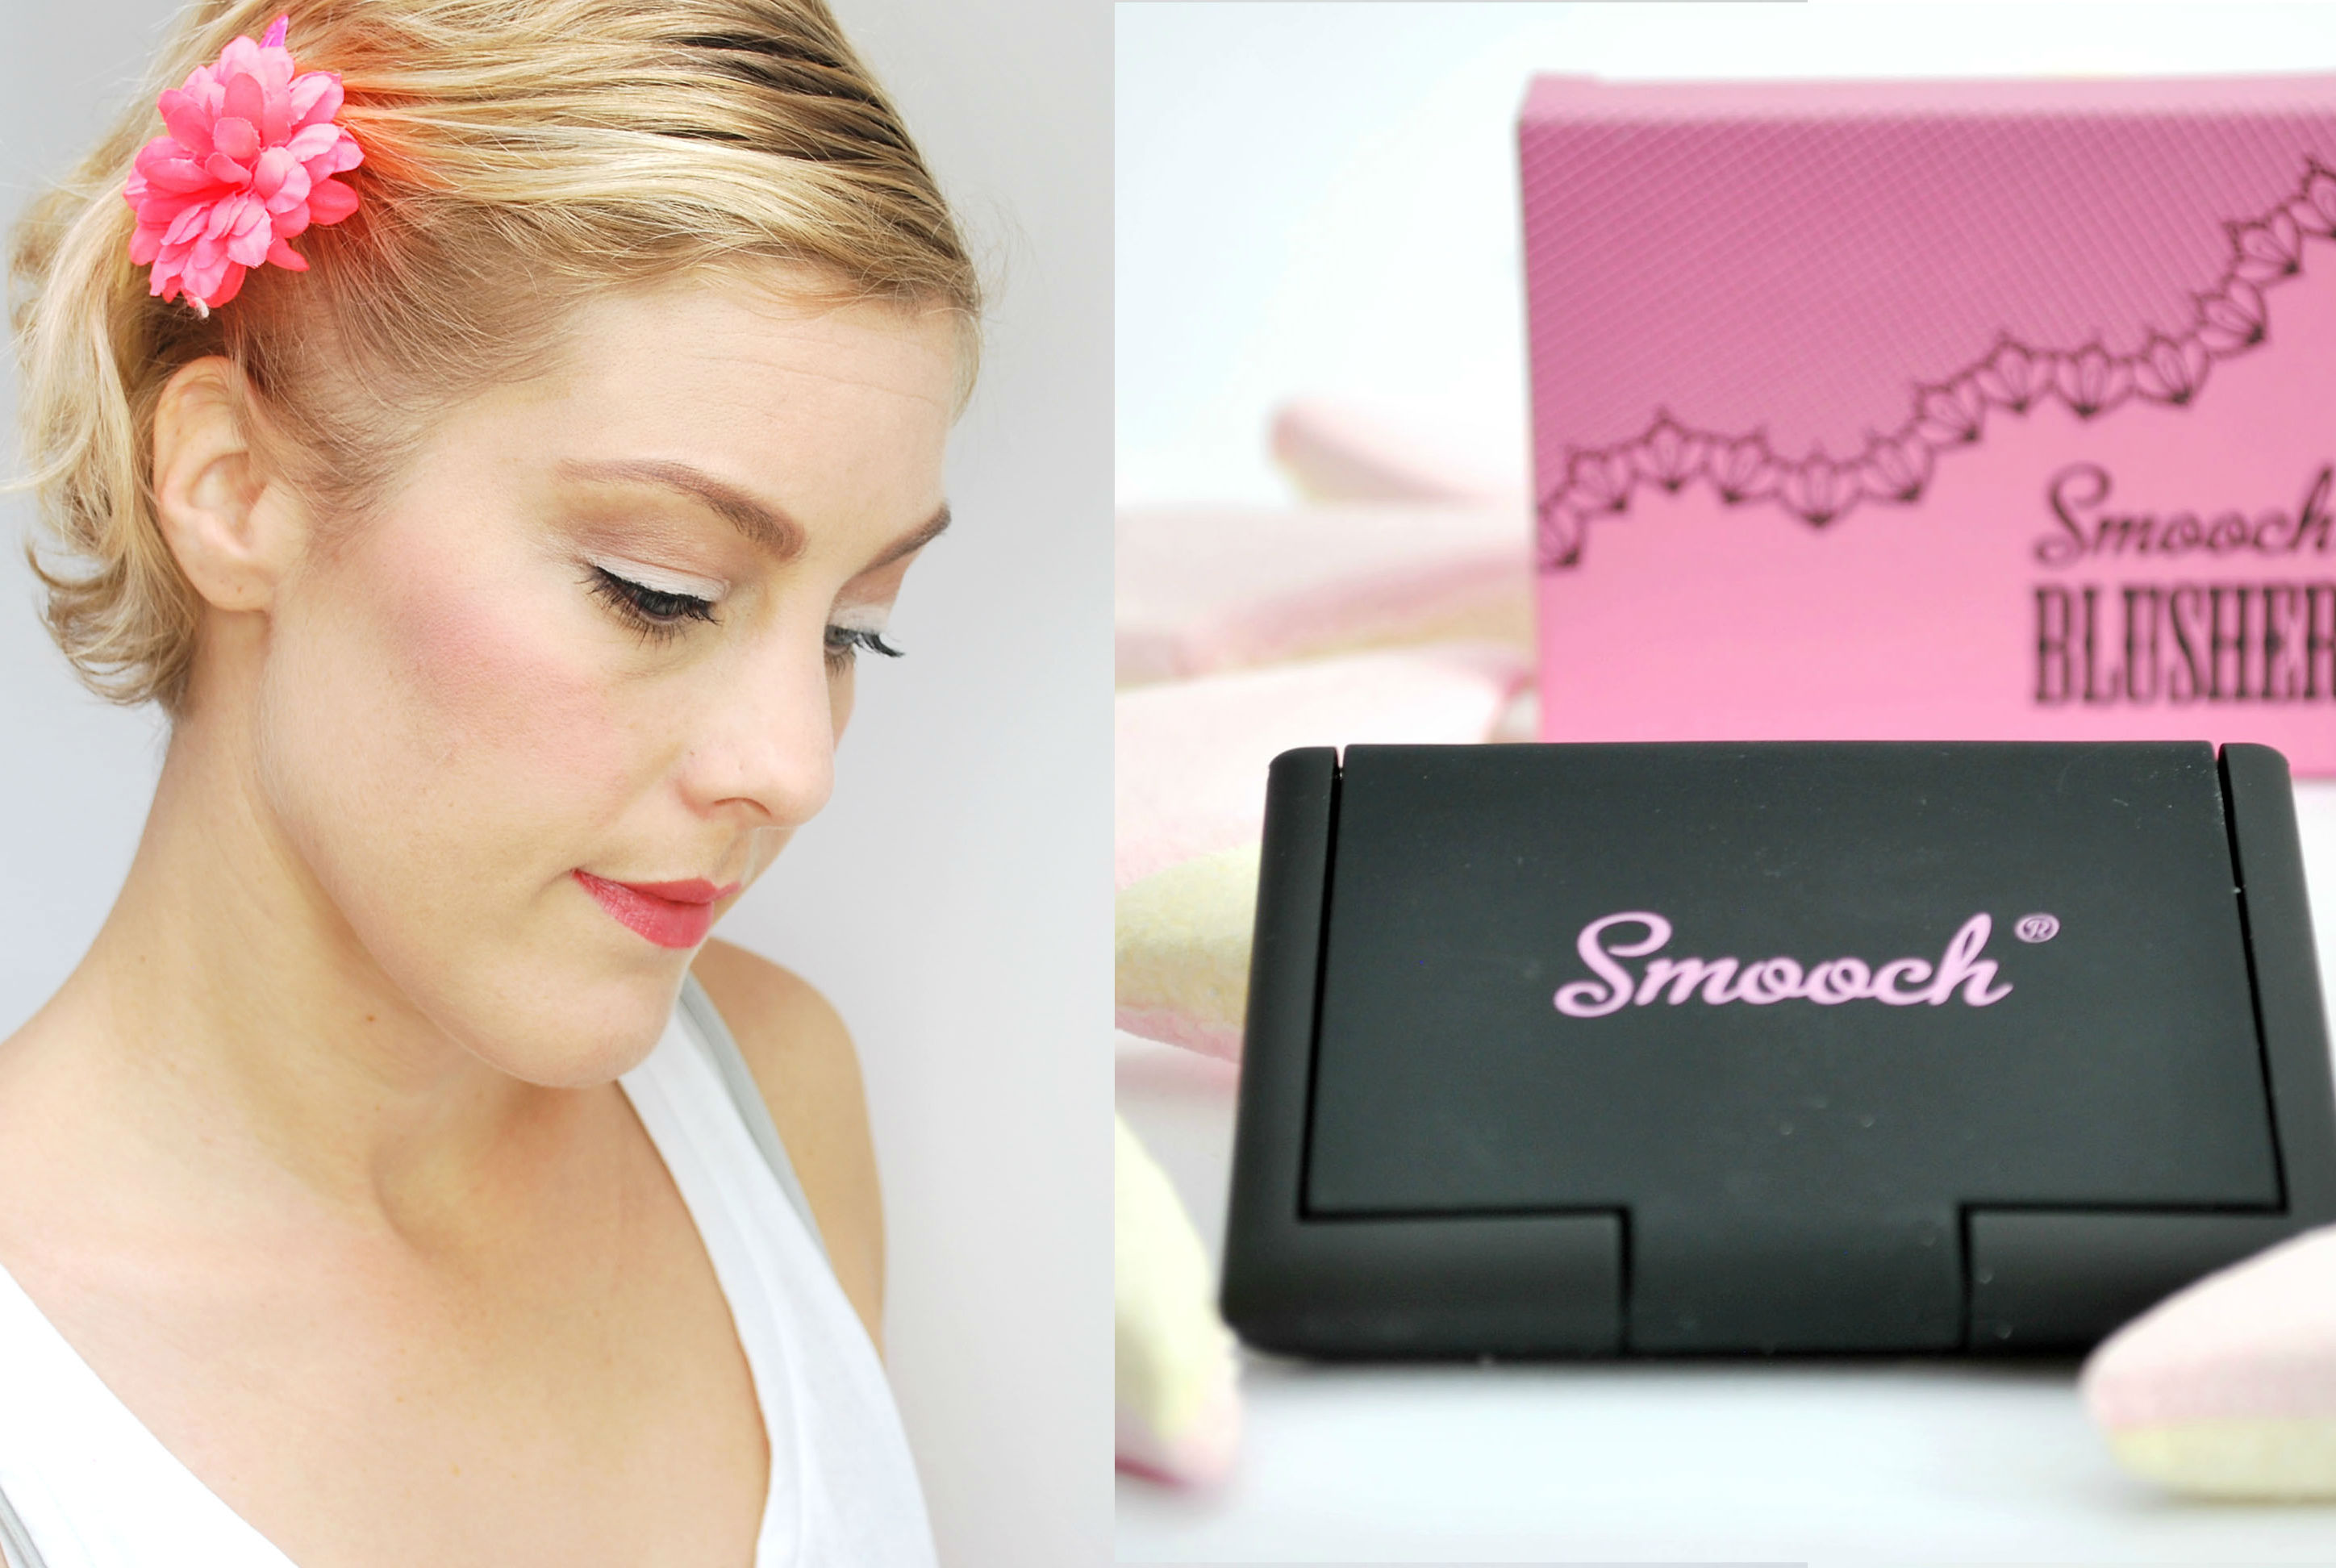 smooch blush review sugar rush